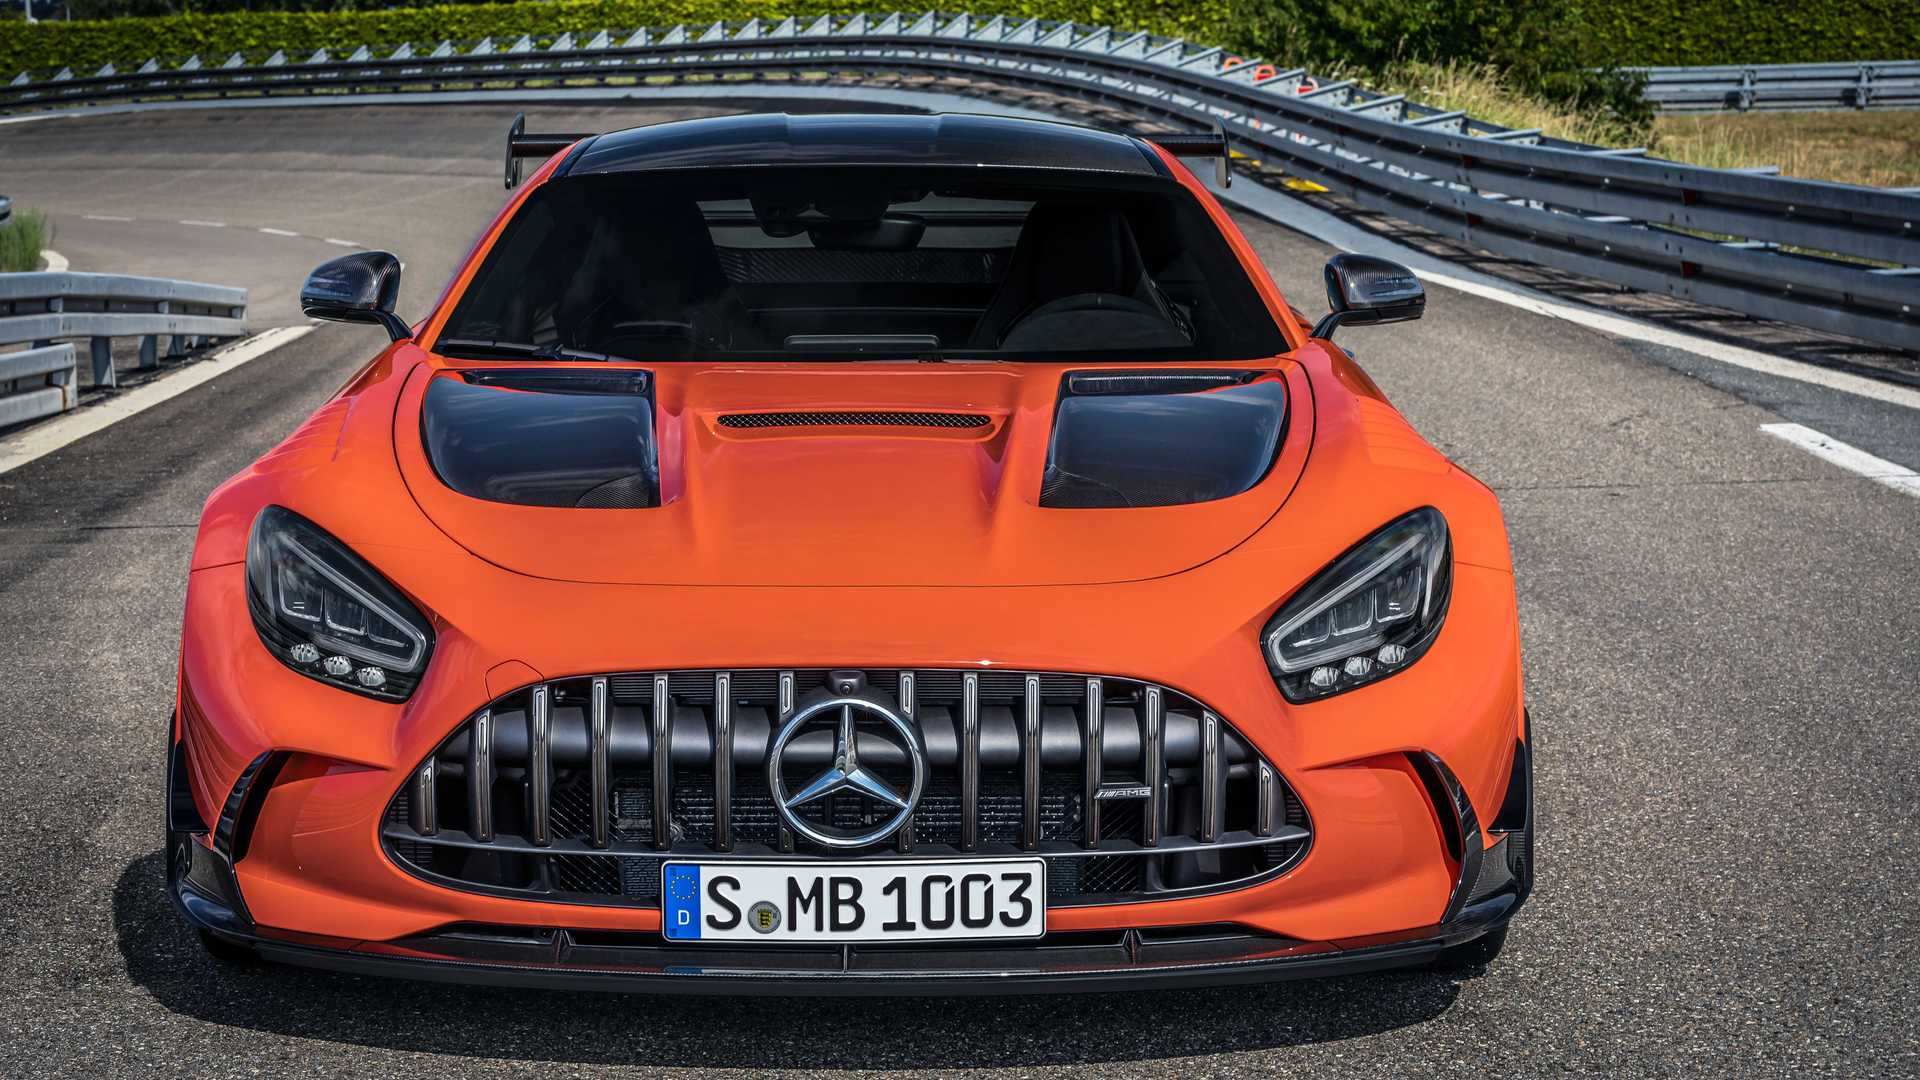 2014 - [Mercedes-AMG] GT [C190] - Page 33 2021-mercedes-amg-gt-black-series-front-view